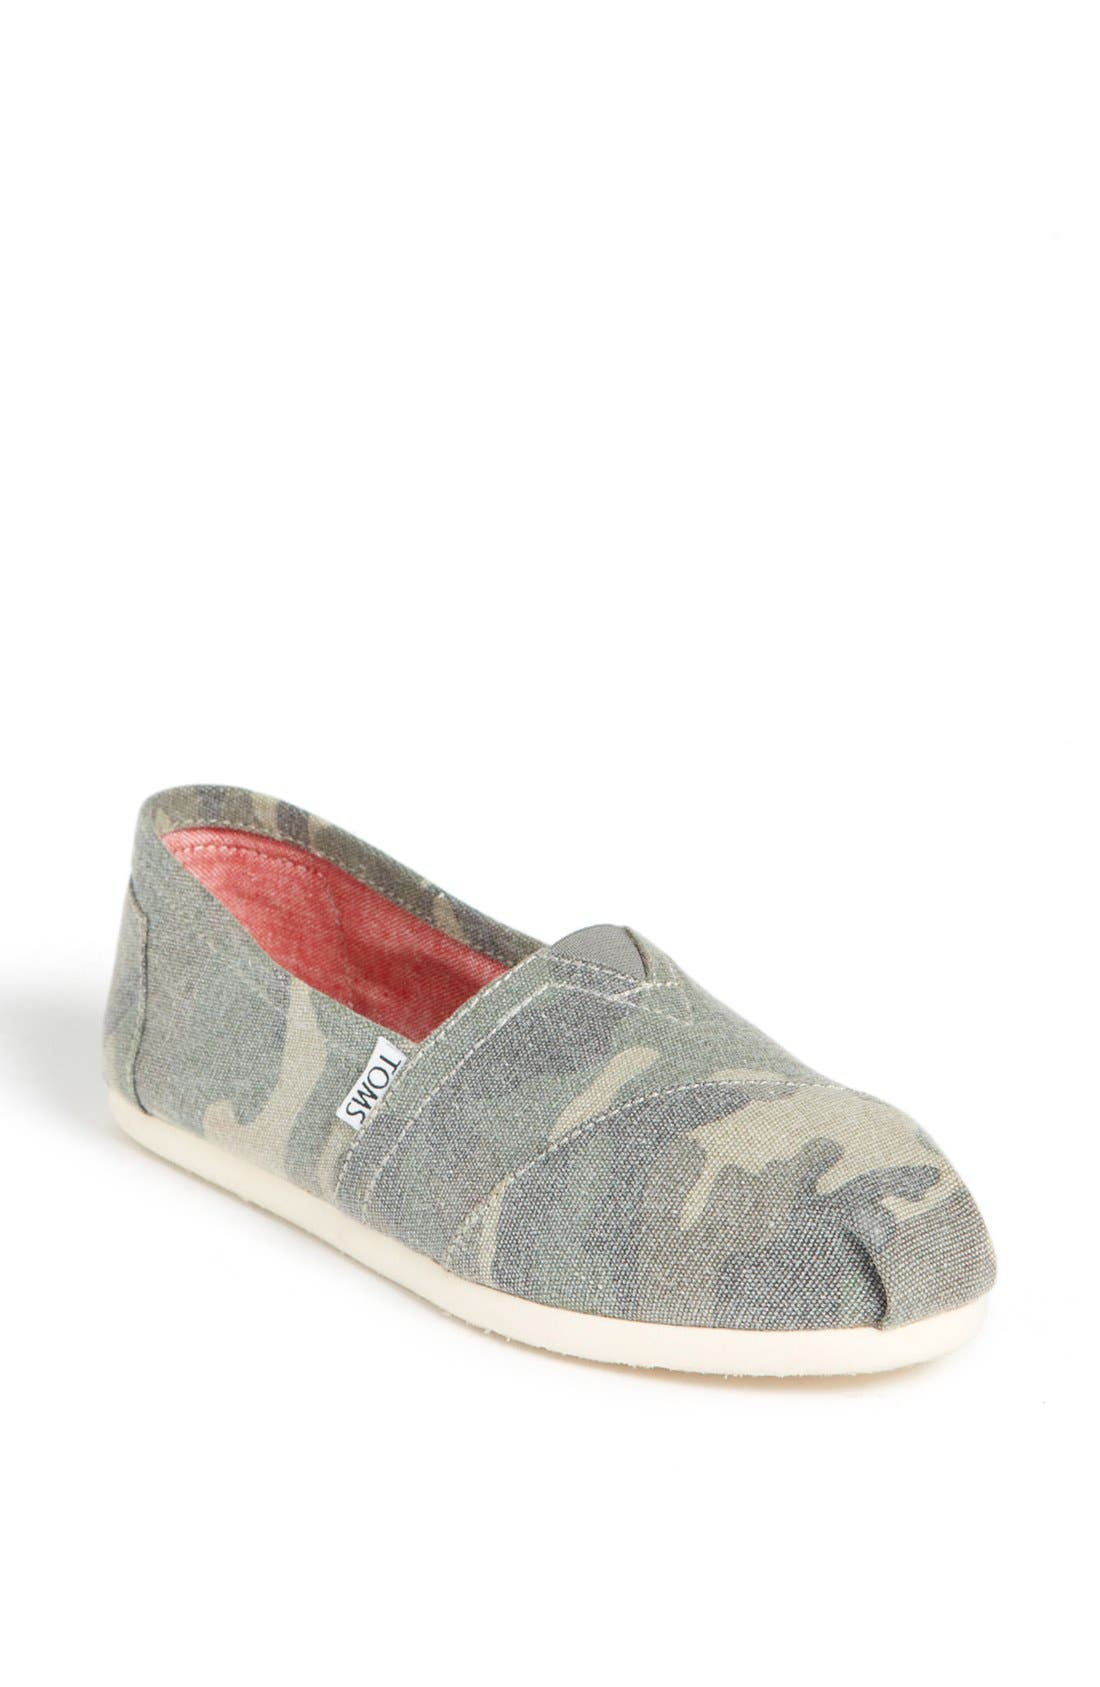 Alternate Image 1 Selected - TOMS 'Classic - Camo' Canvas Slip-On (Women)